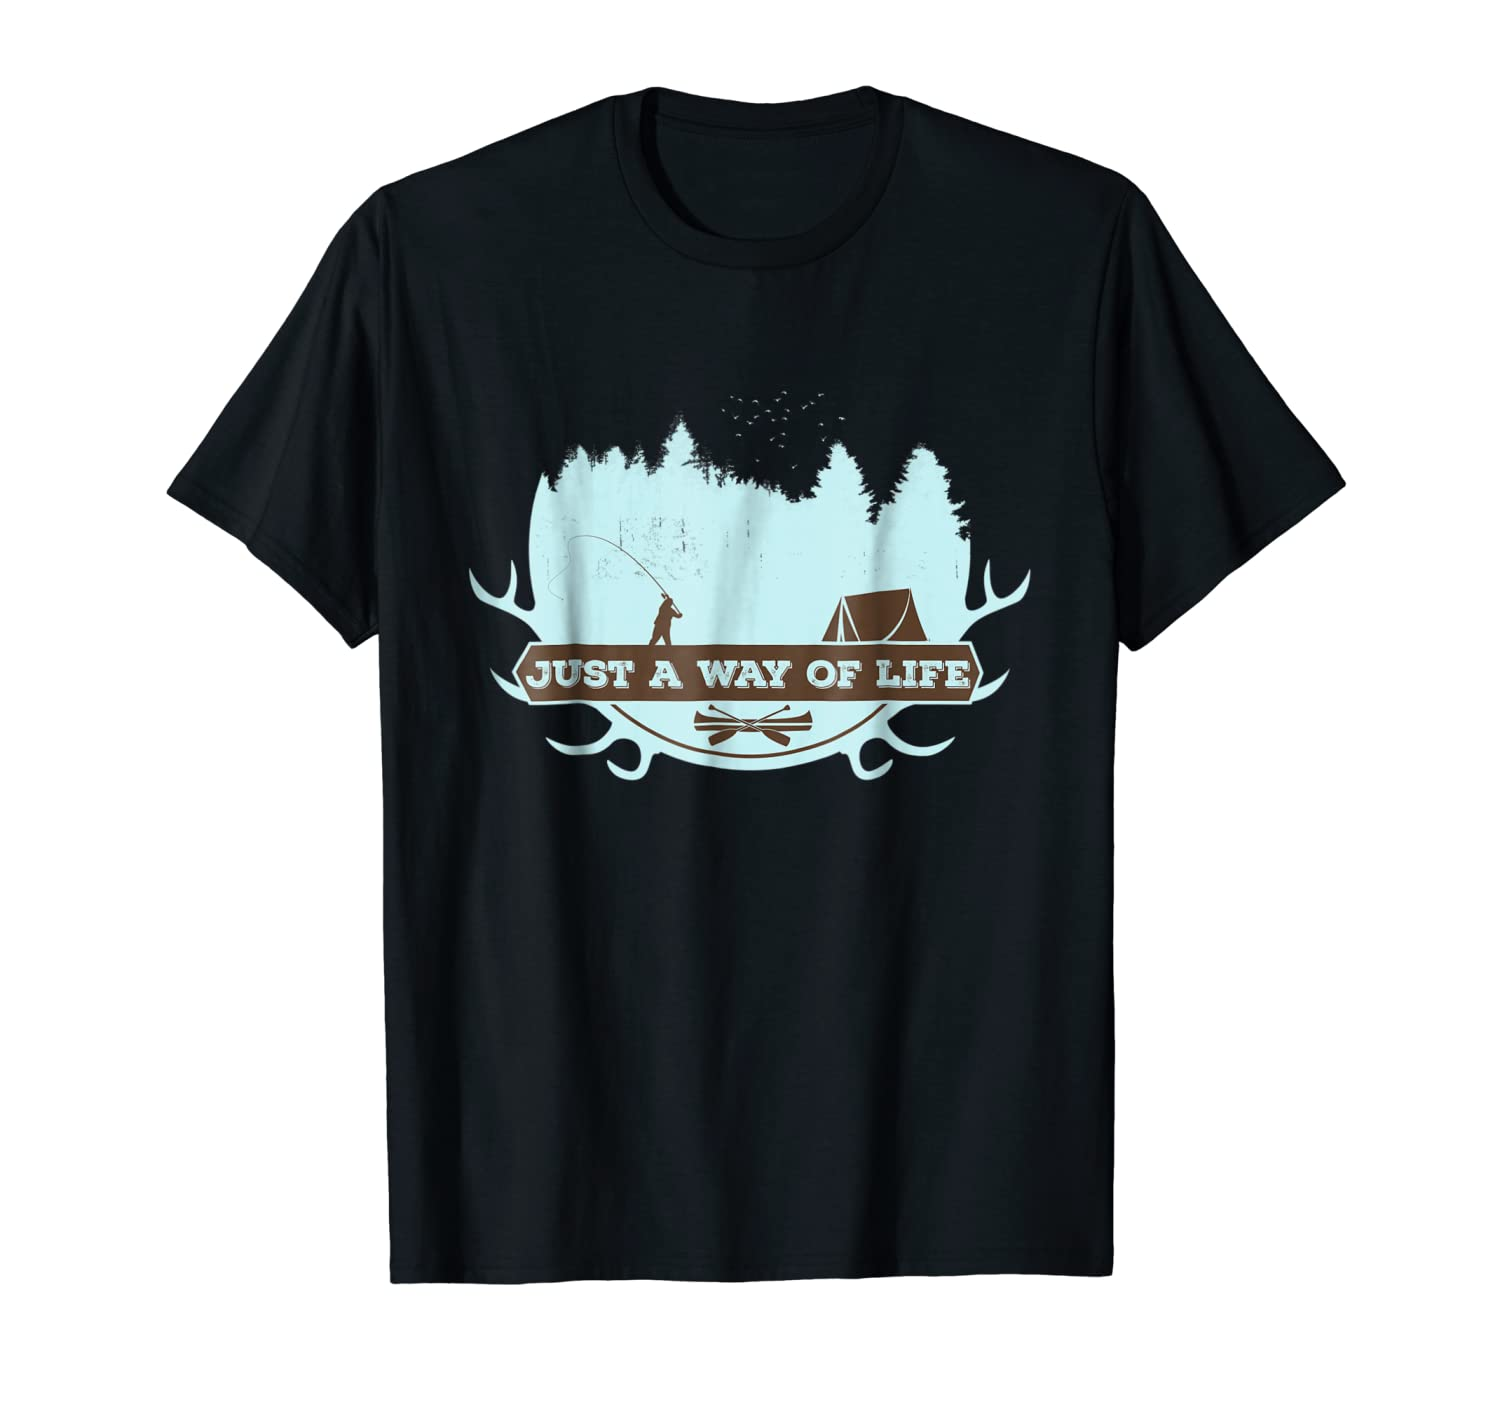 camp-life-shirt-women kids outdoor camping the hate hunting